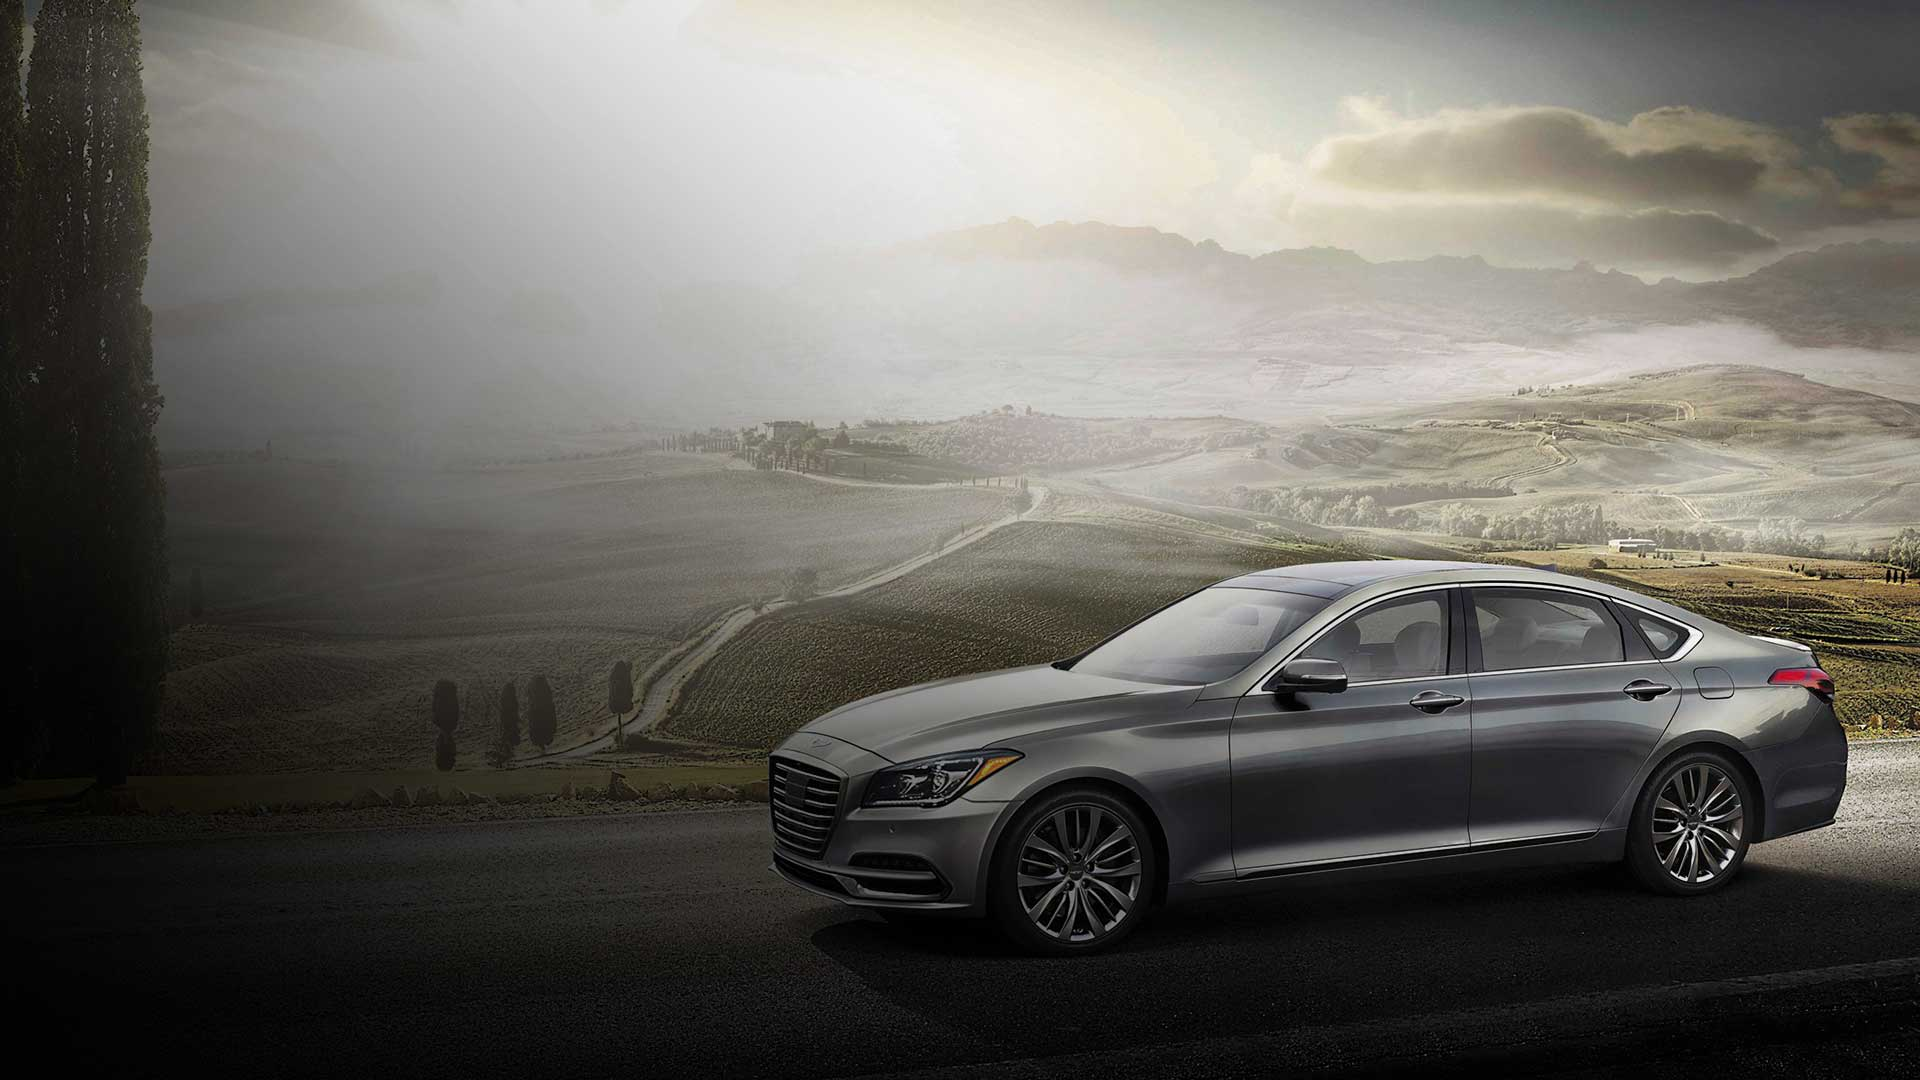 Genesis G80 - New Midsize Luxury Sedan From Genesis USA